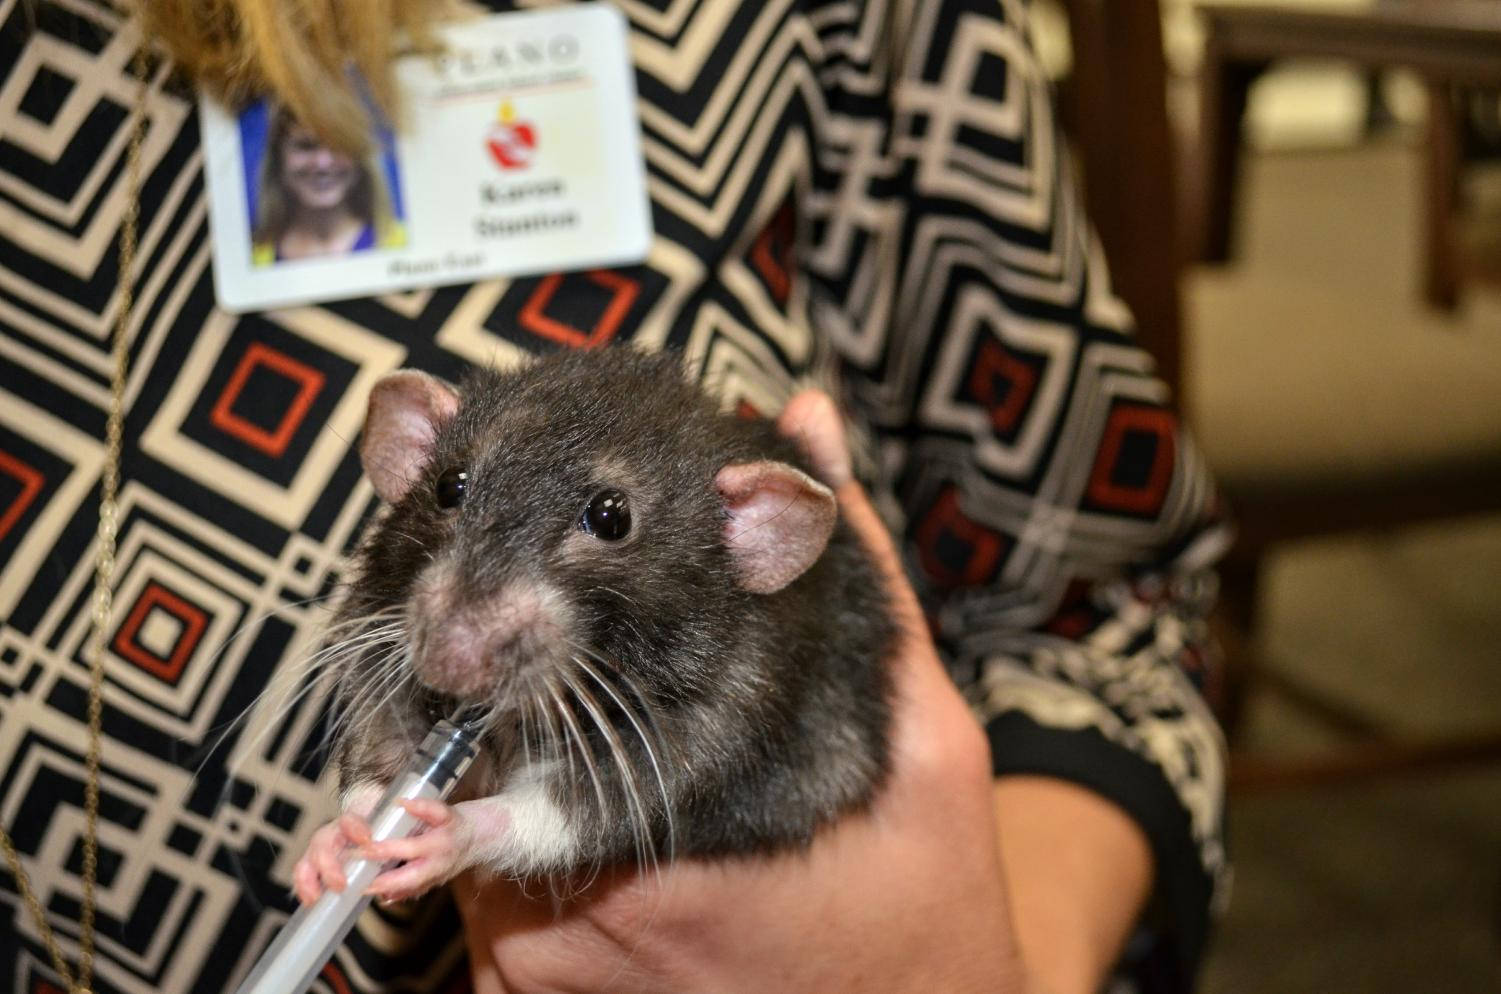 """While held by IB coordinator Karen Stanton, Gus peers into the camera. Gus drank medicine for his mild respiratory infection from a syringe. """"I'll sometimes go out [to the cage] and hold them or take a little break,"""" Stanton said."""